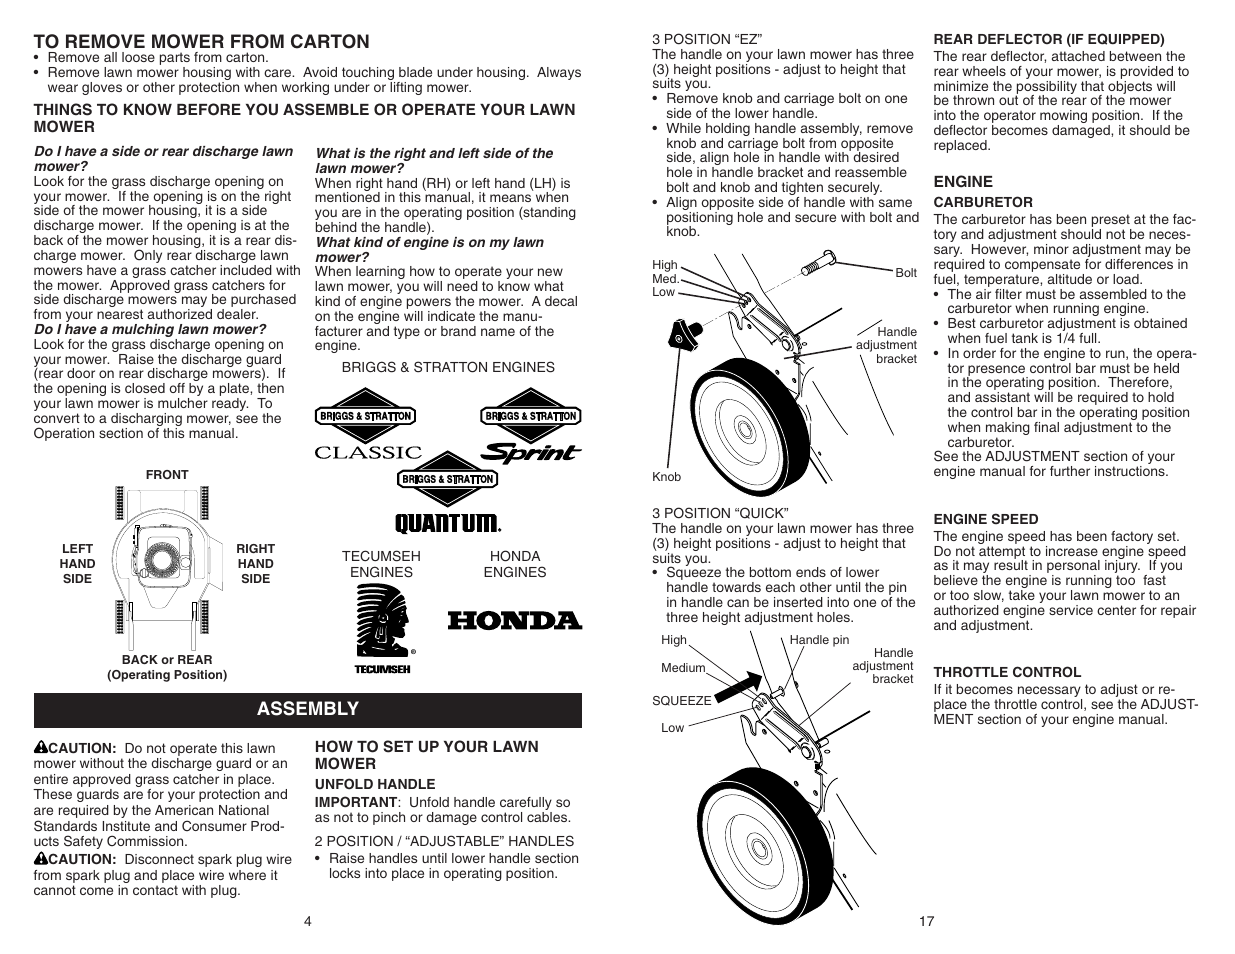 Assembly to remove mower from carton | Poulan Pro PR600N21RH LAWN MOWER  User Manual | Page